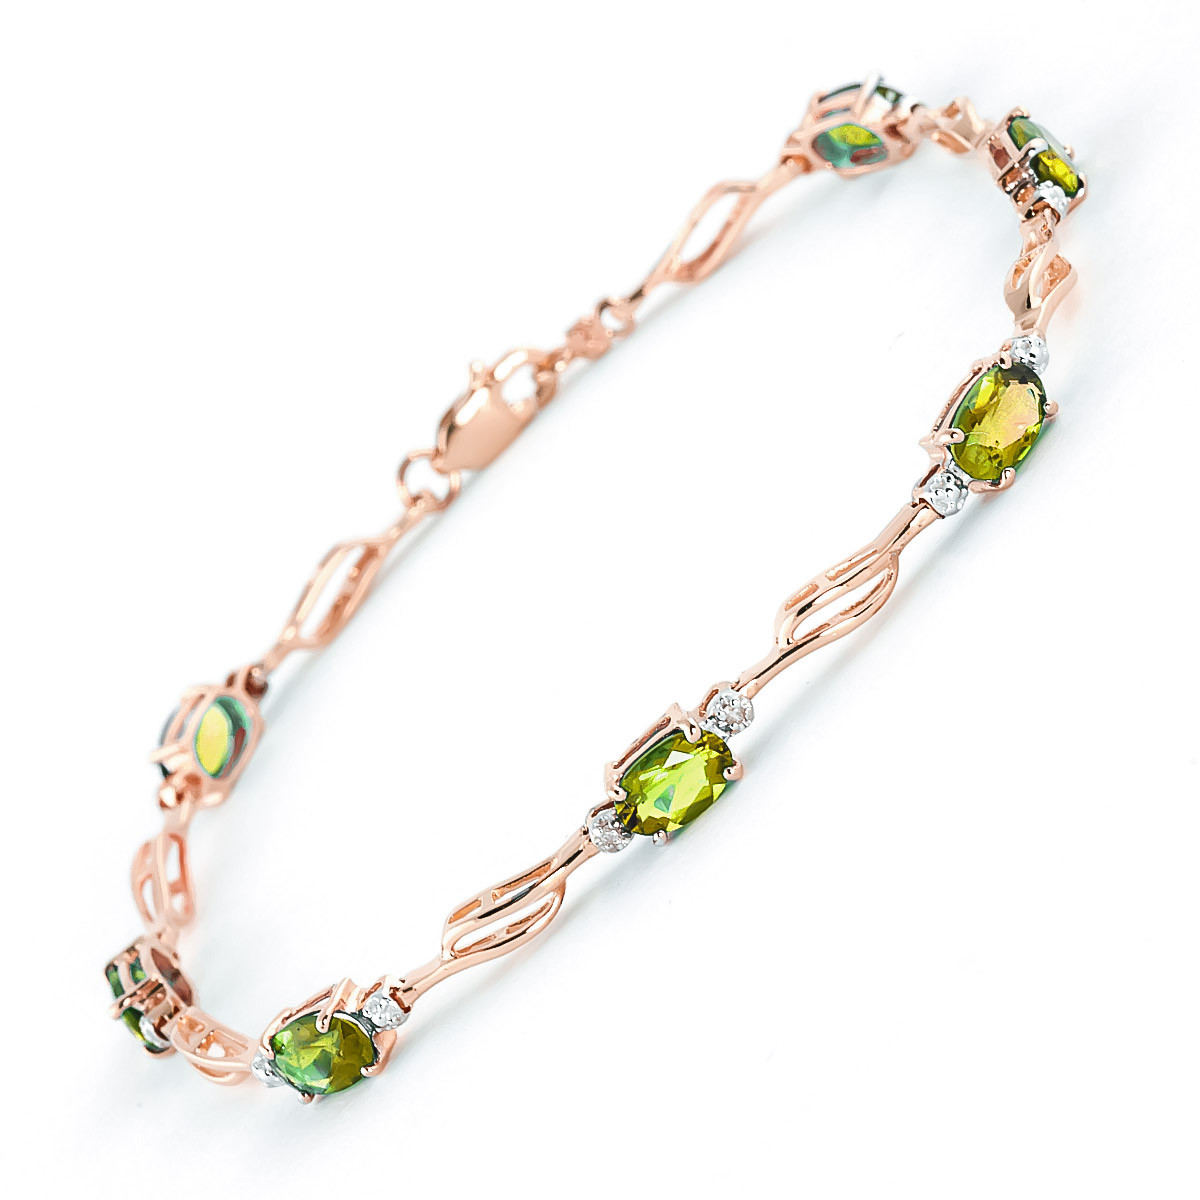 Peridot & Diamond Classic Tennis Bracelet in 9ct Rose Gold